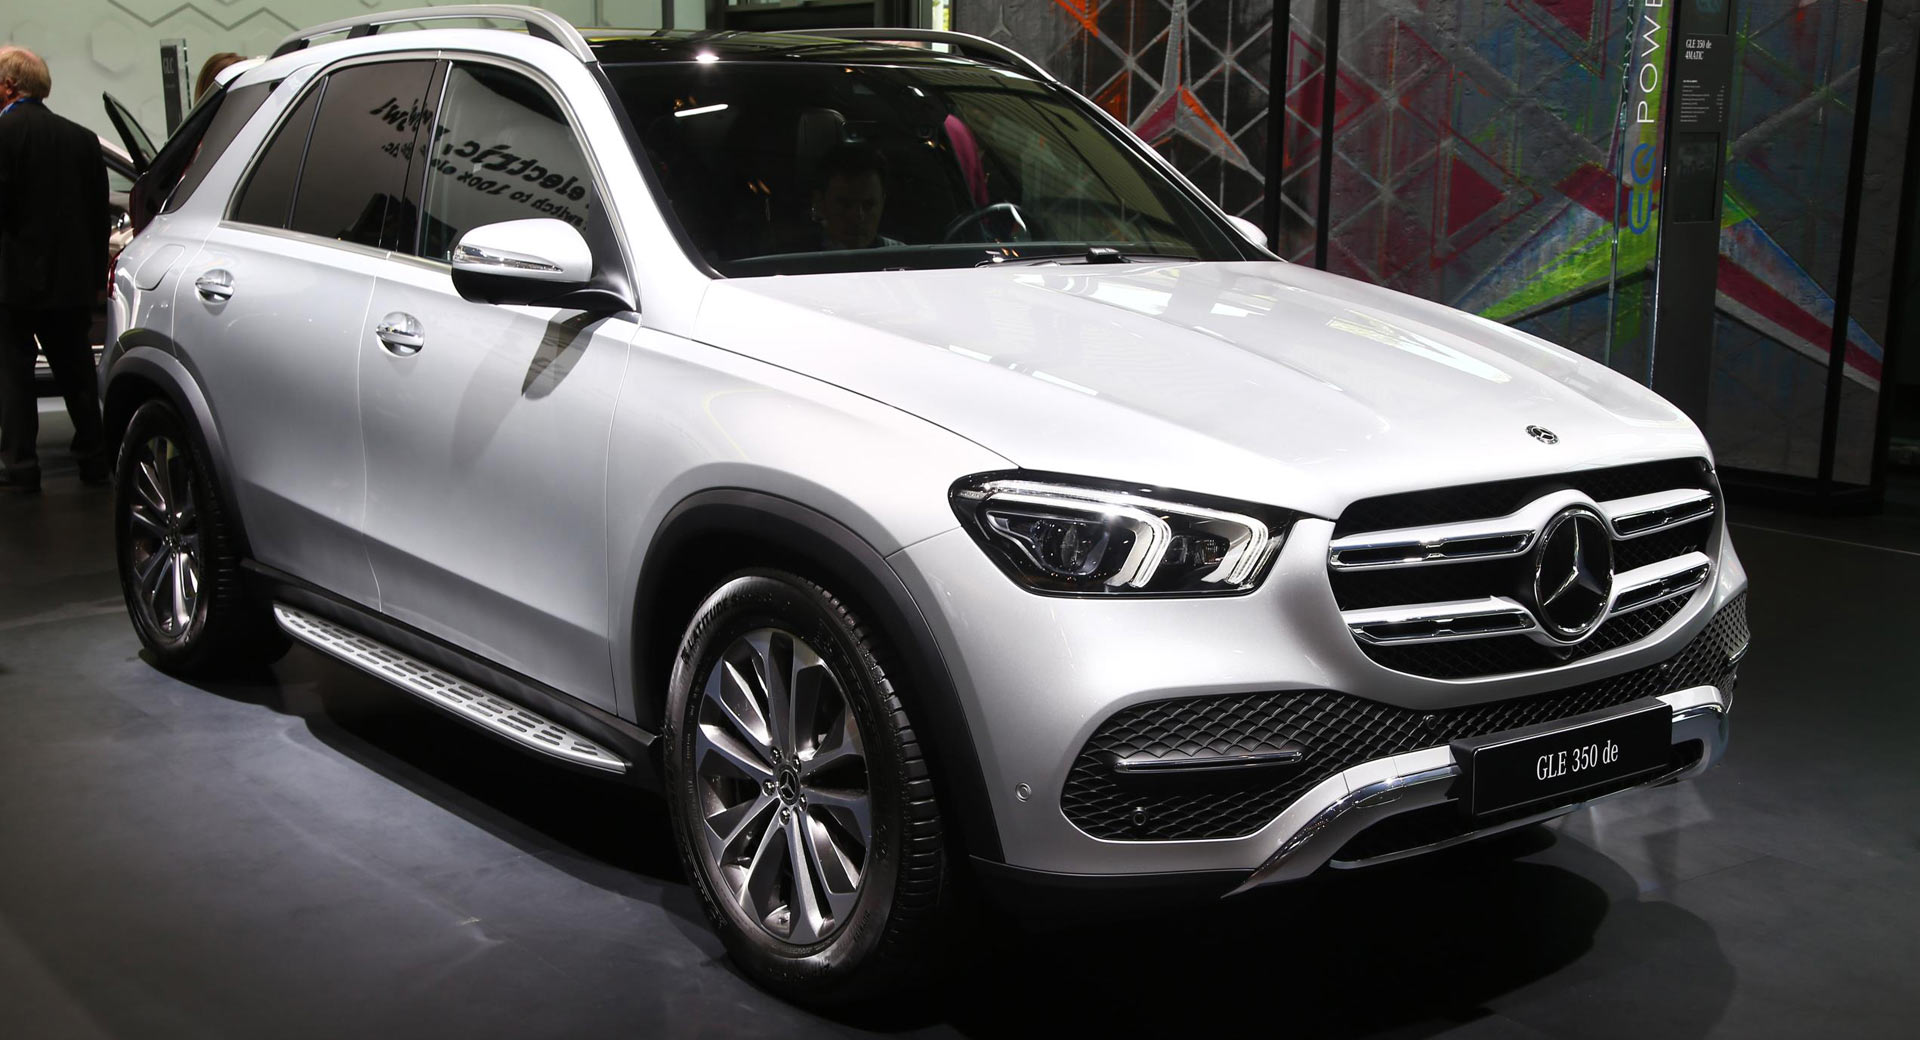 Pure Frankfurt New Mercedes-benz Gle 350 De 4matic Tries To Stand Out